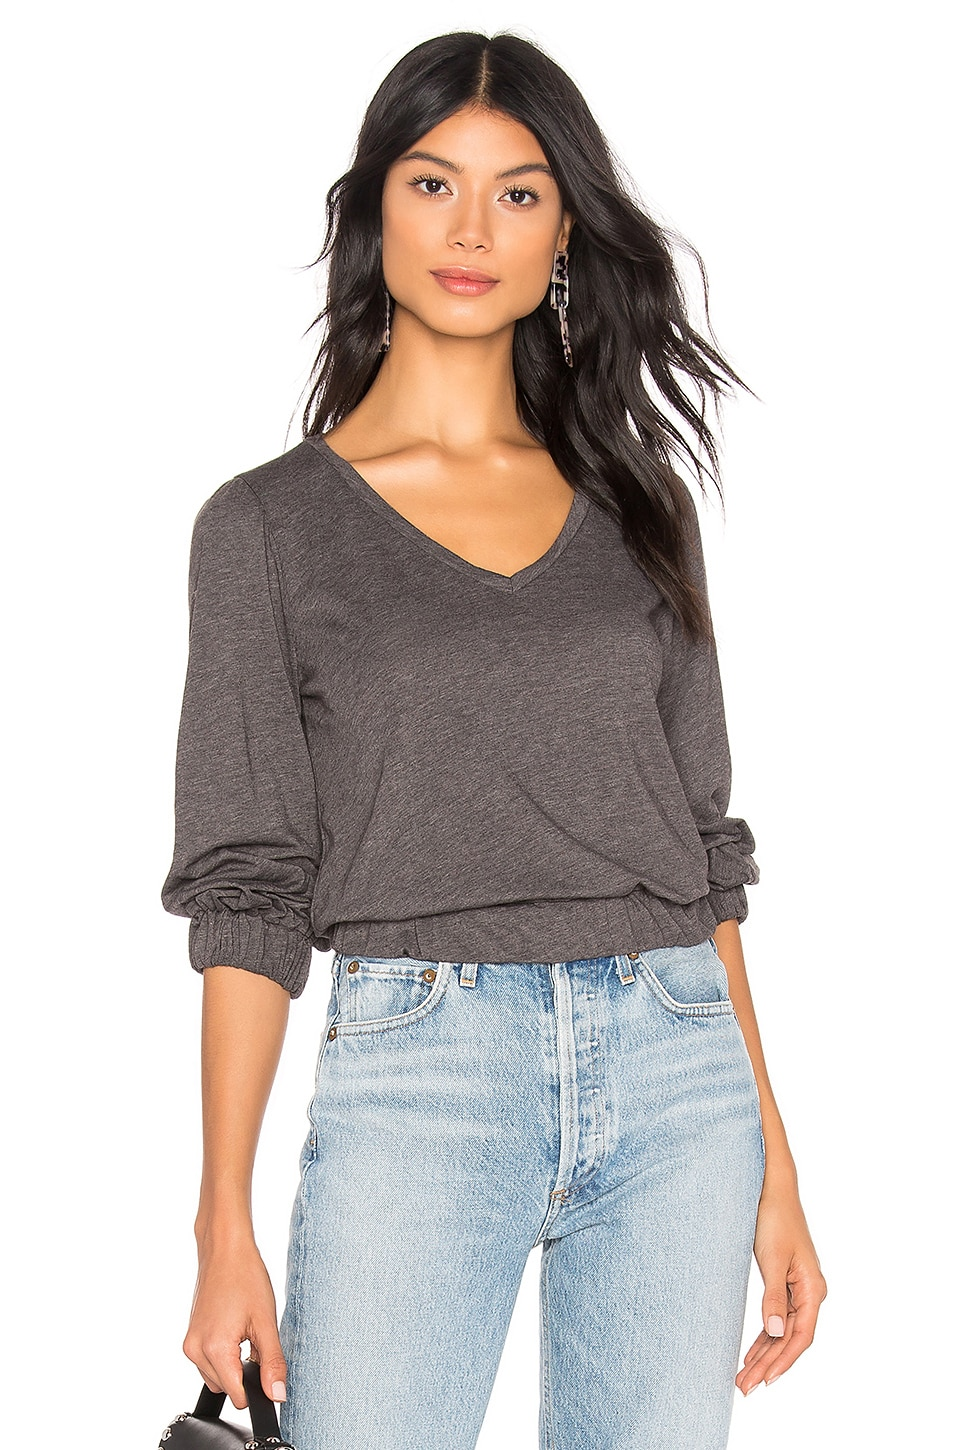 LA Made Kat Top in Anthracite